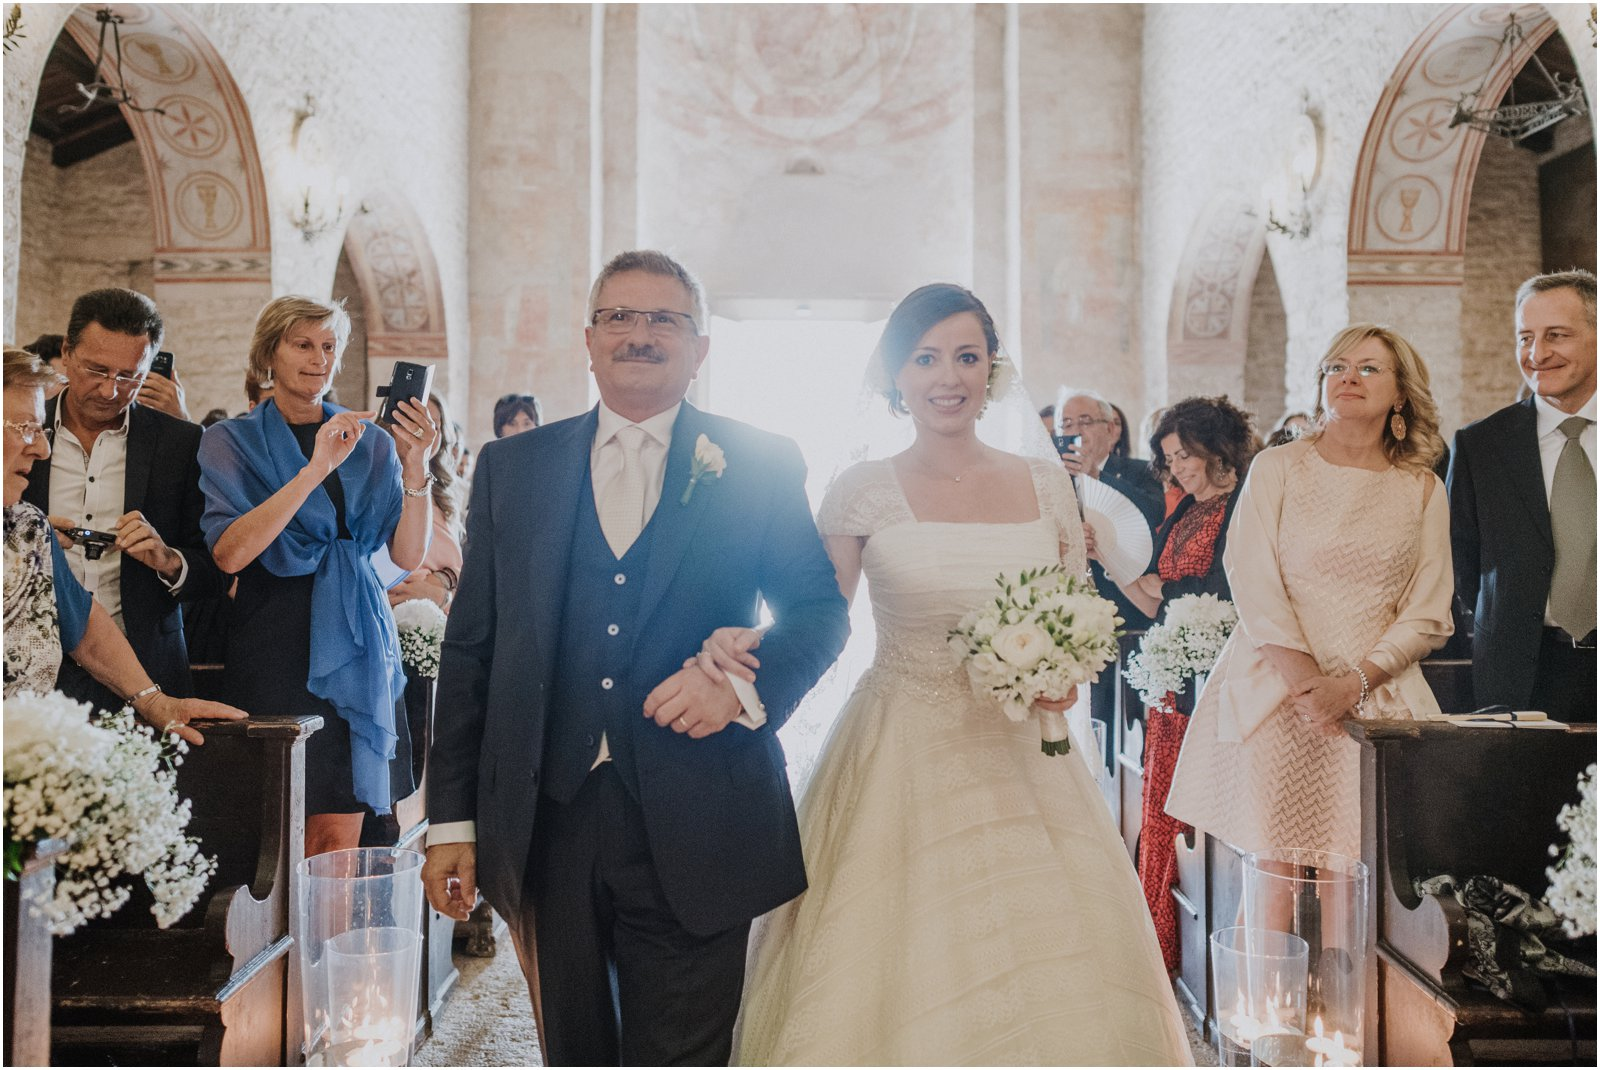 veronasposi foto e video matrimonio verona_0564